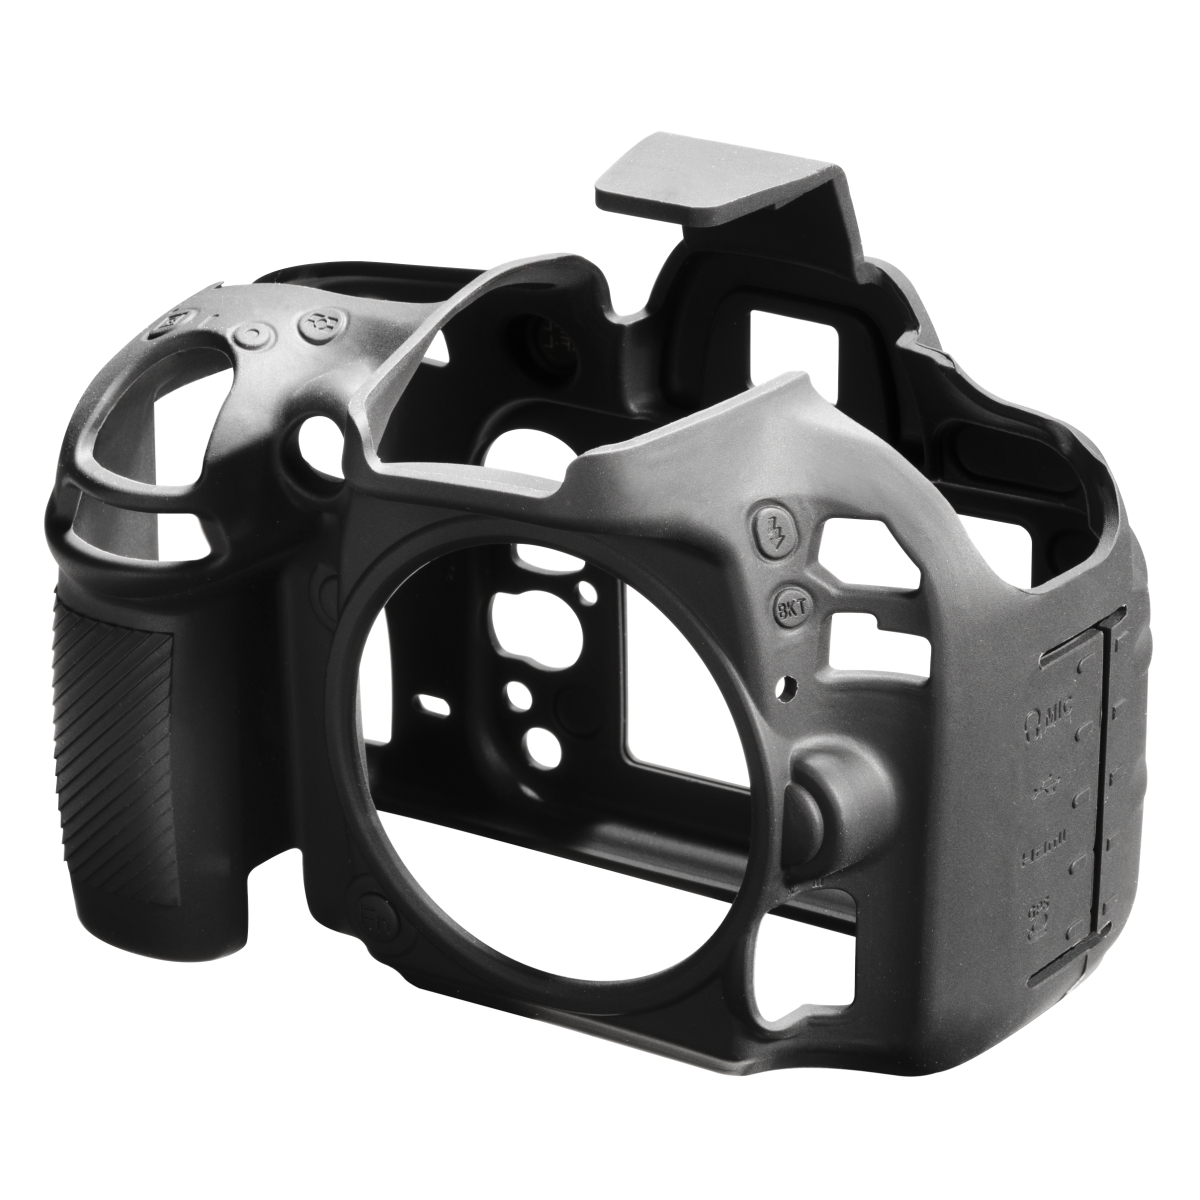 Walimex pro easyCover for Nikon D600